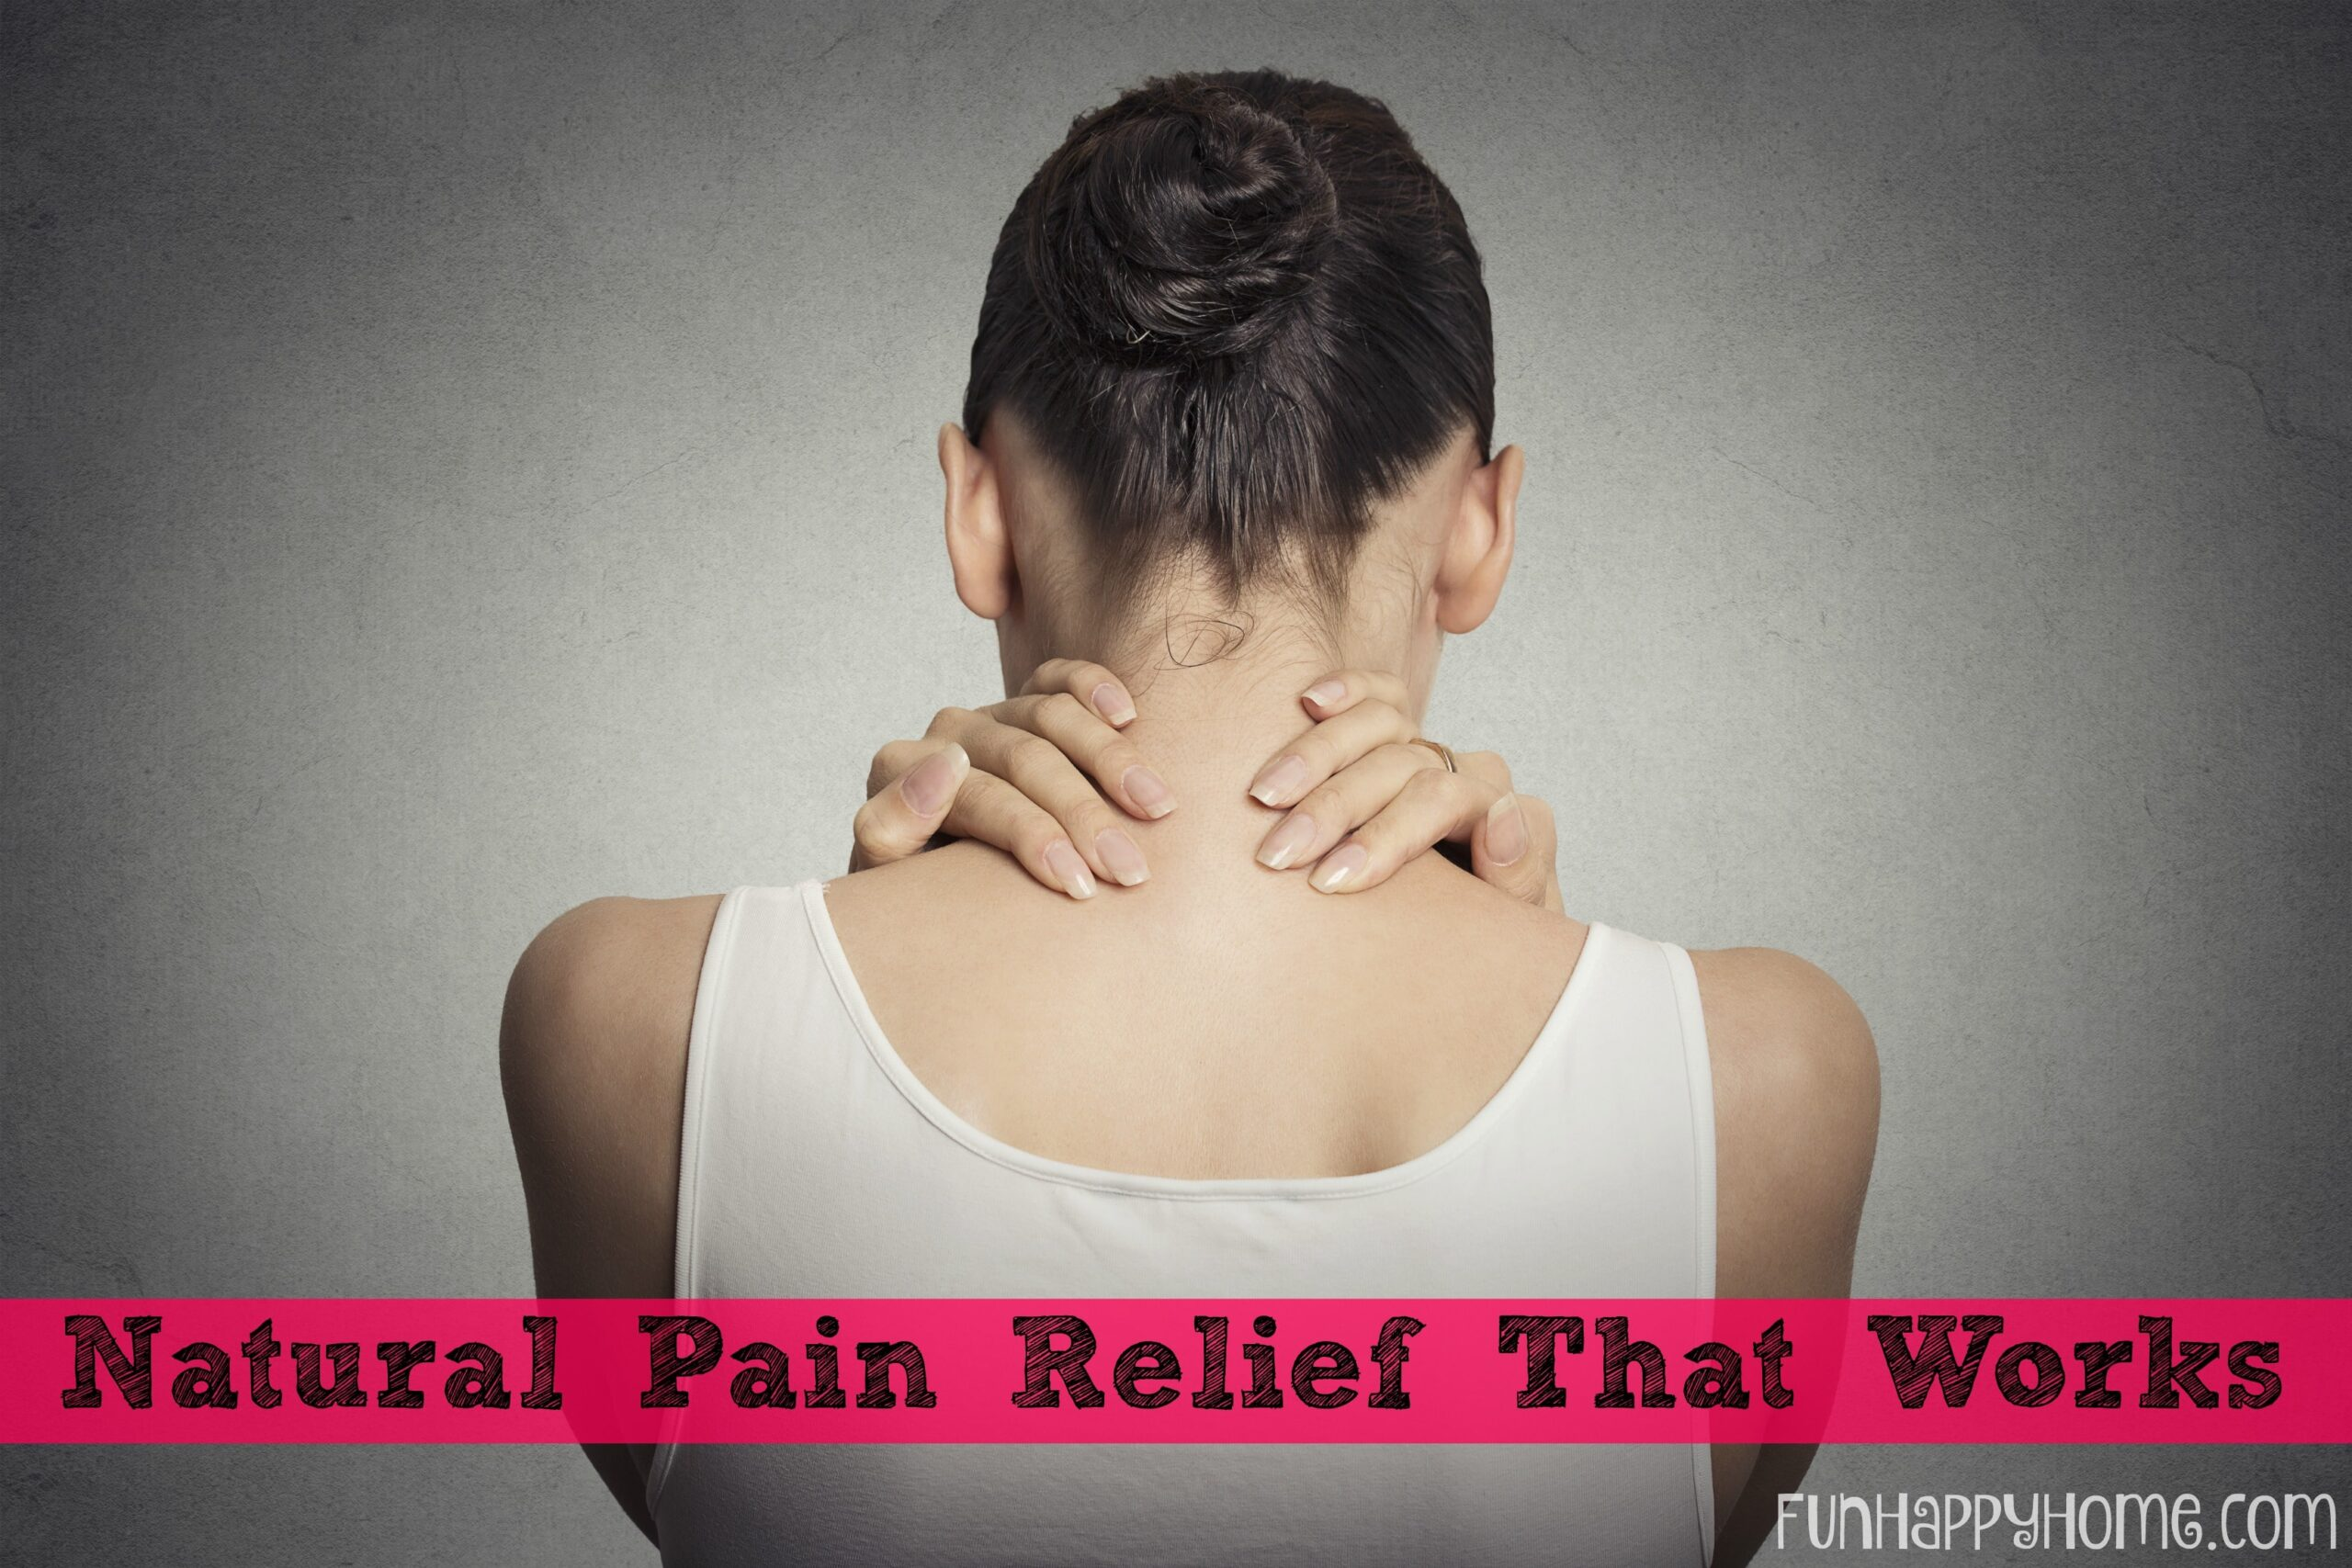 Natural Pain Relief That WORKS!